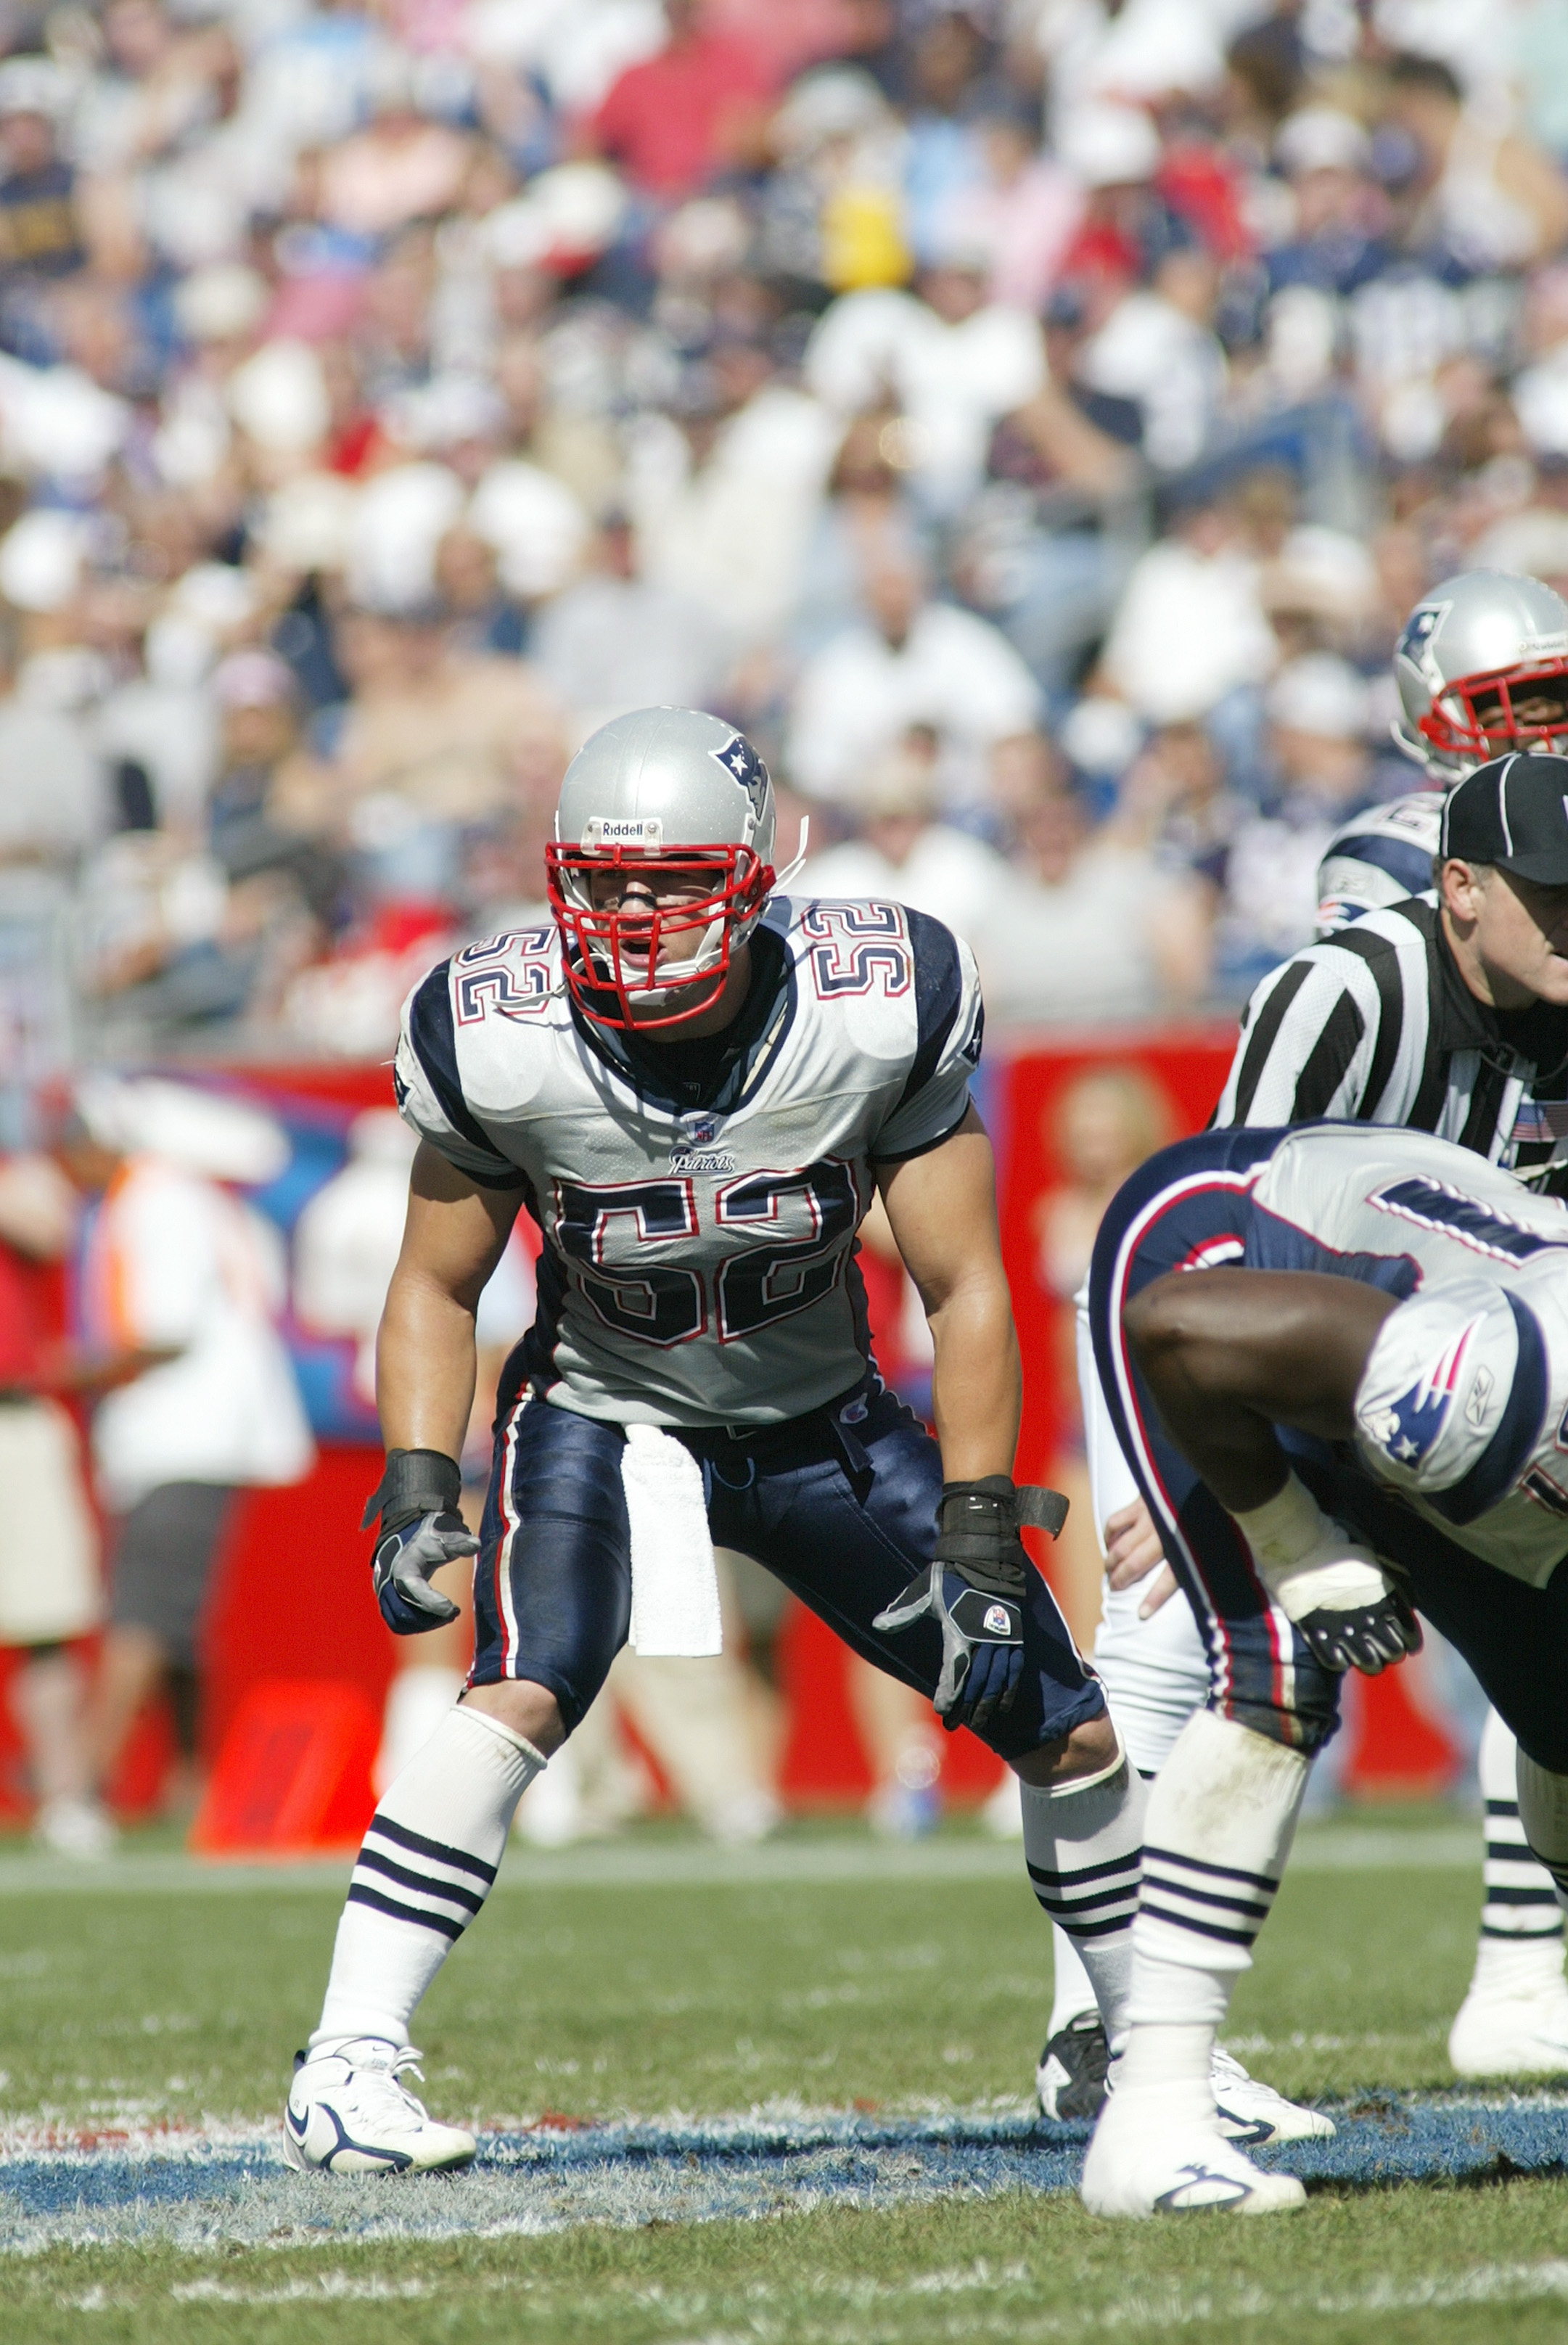 FOXBORO, MA - OCTOBER 2:  Linebacker Monty Beisel #52 of the New England Patriots looks on against the San Diego Chargers on October 2, 2005 at Gillette Stadium in Foxboro, Massachusetts.  The Chargers won 41-17.  (Photo by Rick Stewart/Getty Images)